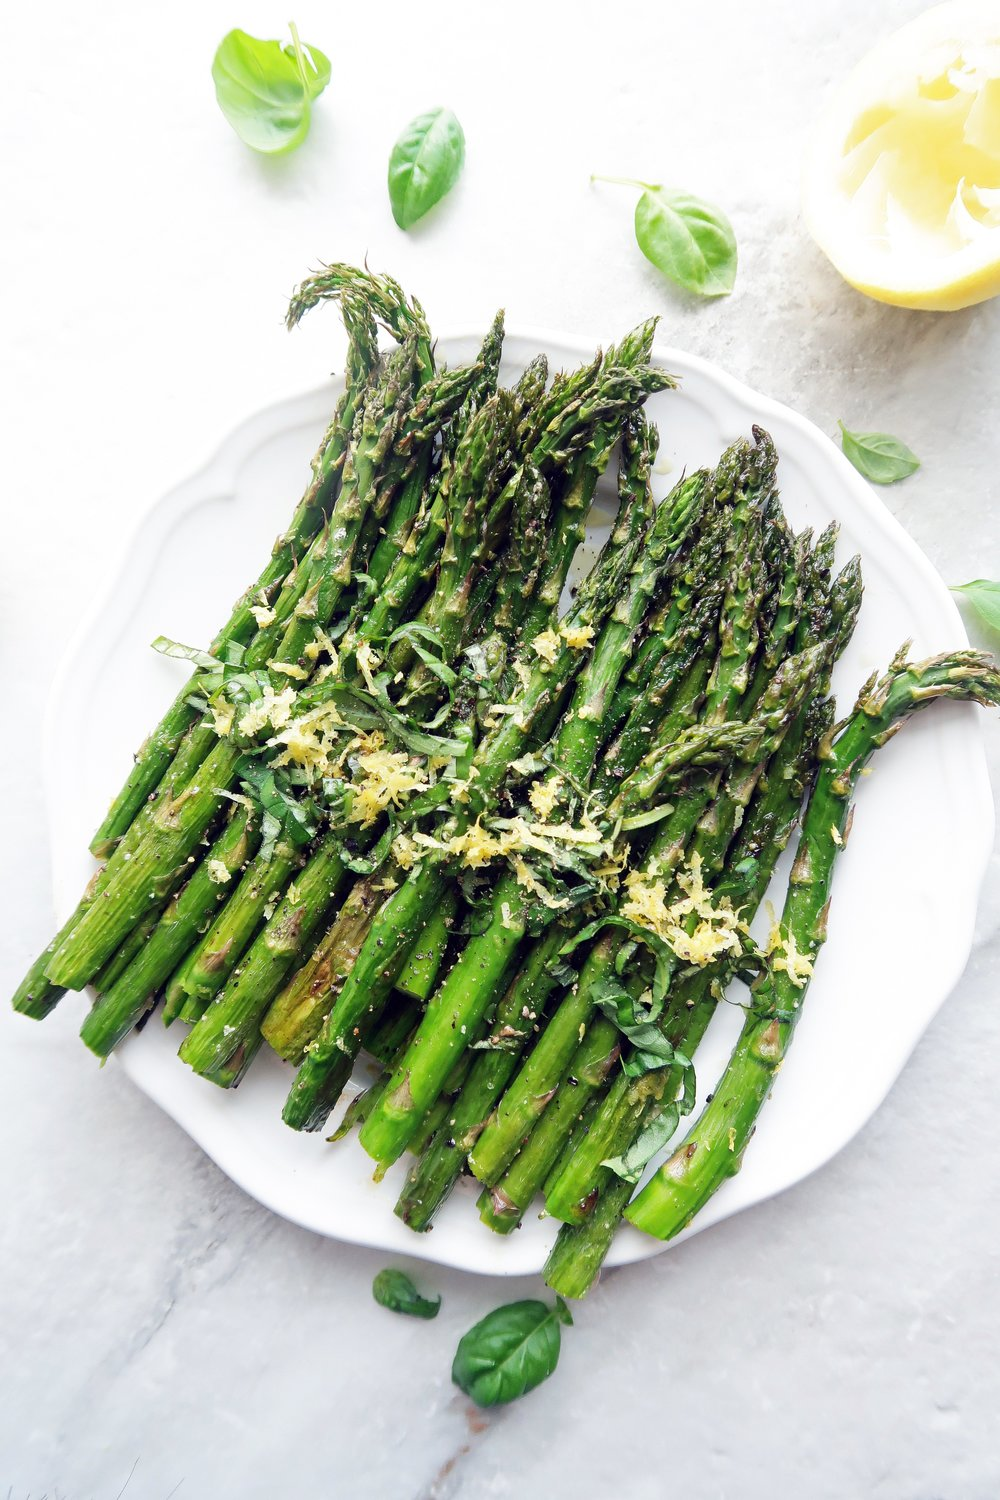 Vegan and gluten-free quick roasted asparagus with lemon zest and sliced basil on a white plate.